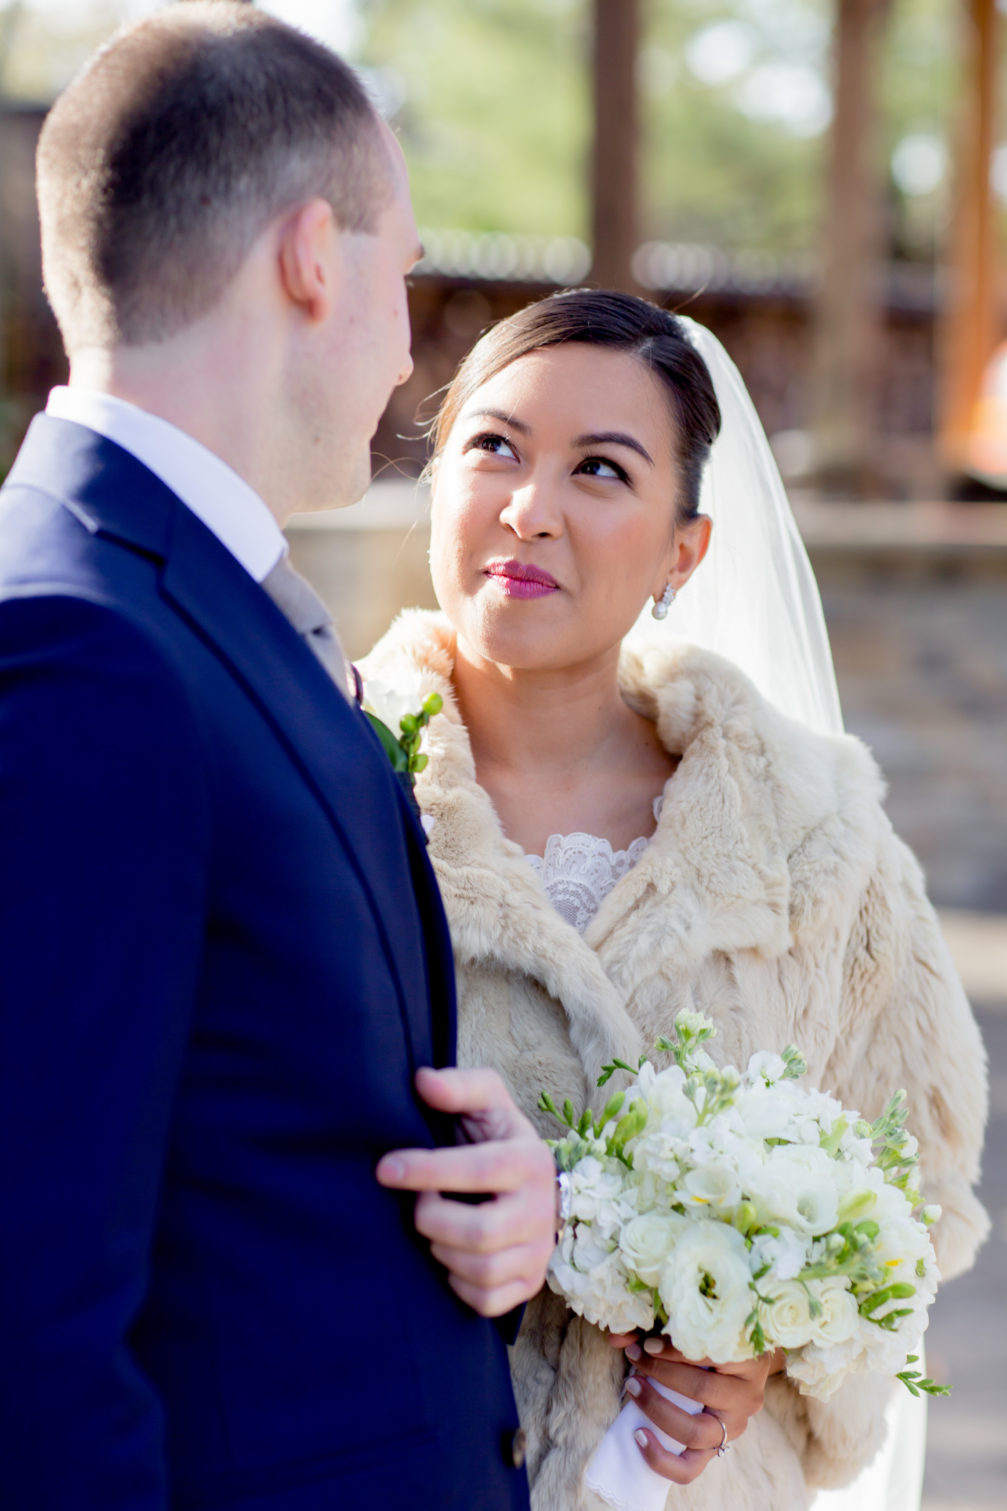 bride with fur stole over wedding gown